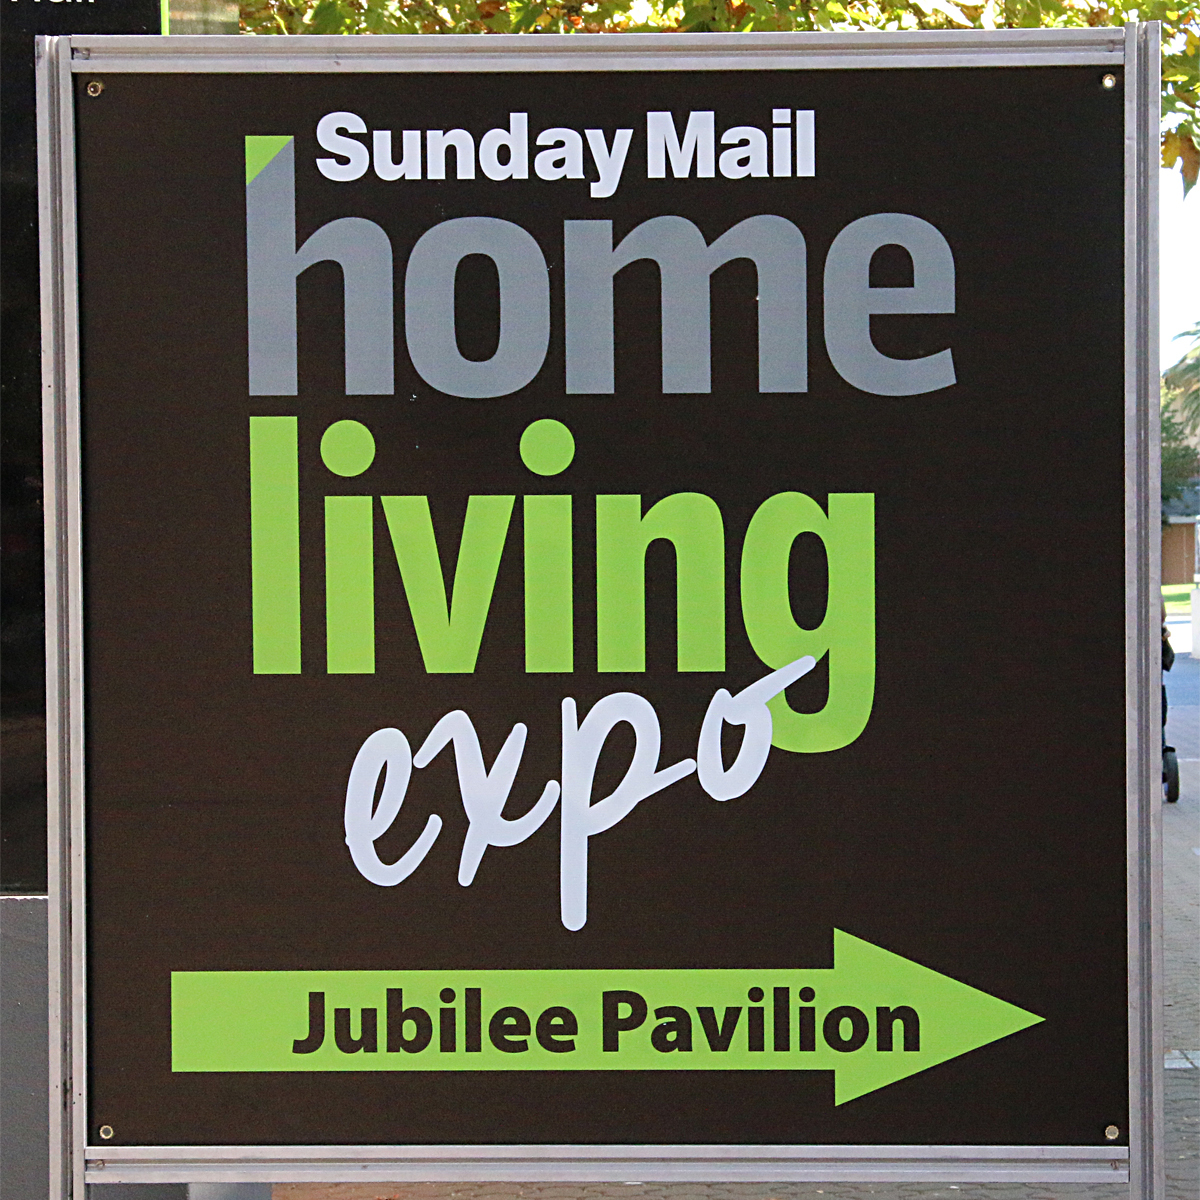 Sunday Mail Home Living Expo 2017